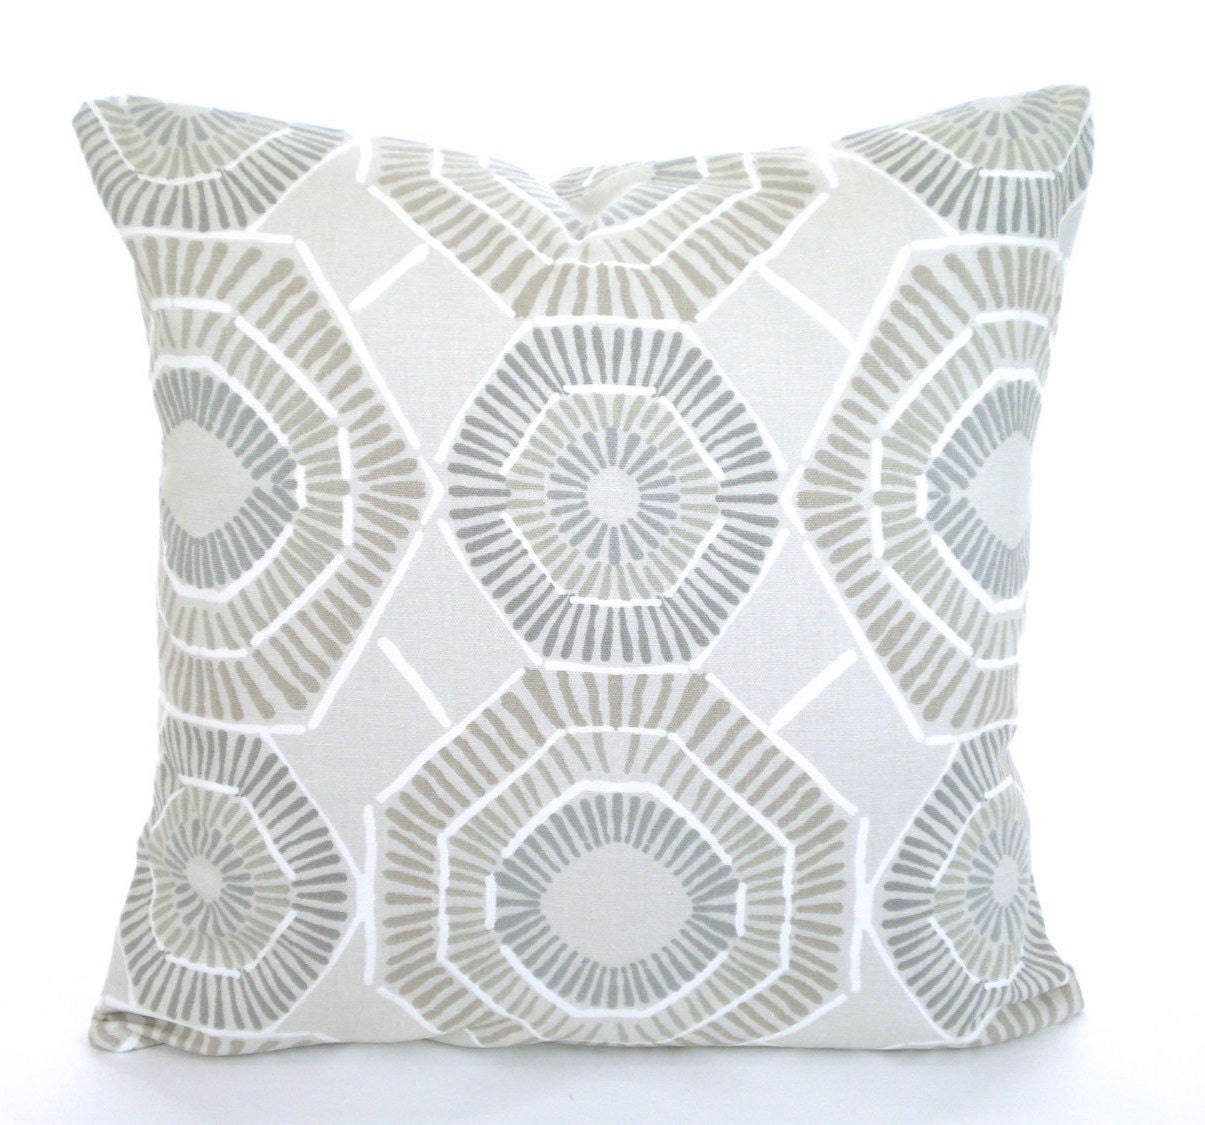 Throw Pillows Tan : Taupe Tan Gray Pillow Covers Decorative Throw Pillows Tan